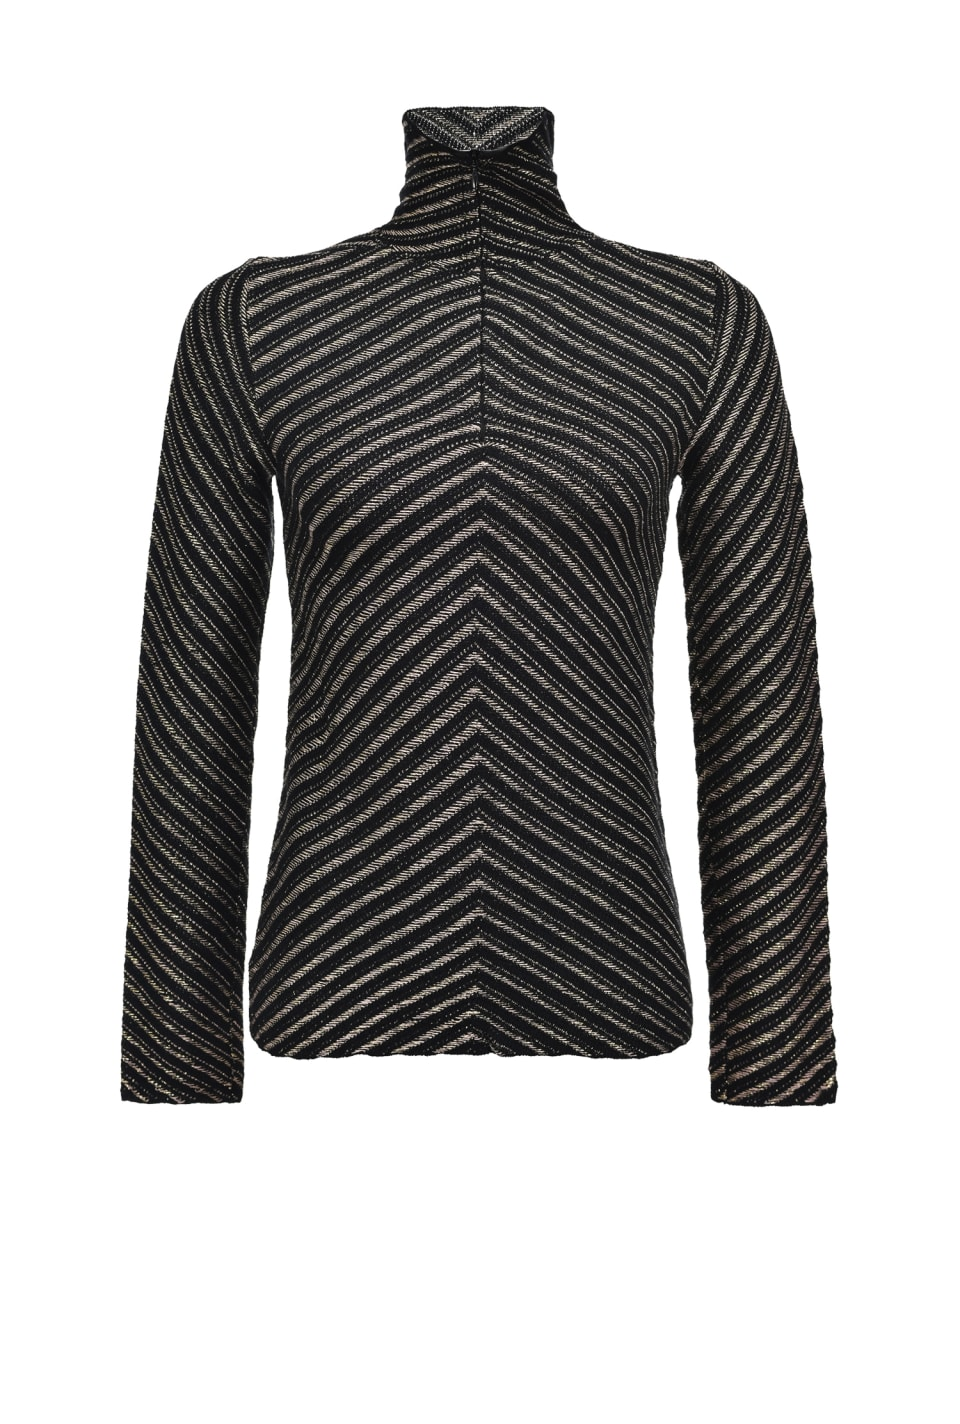 Turtleneck sweater in chevron jacquard - Pinko